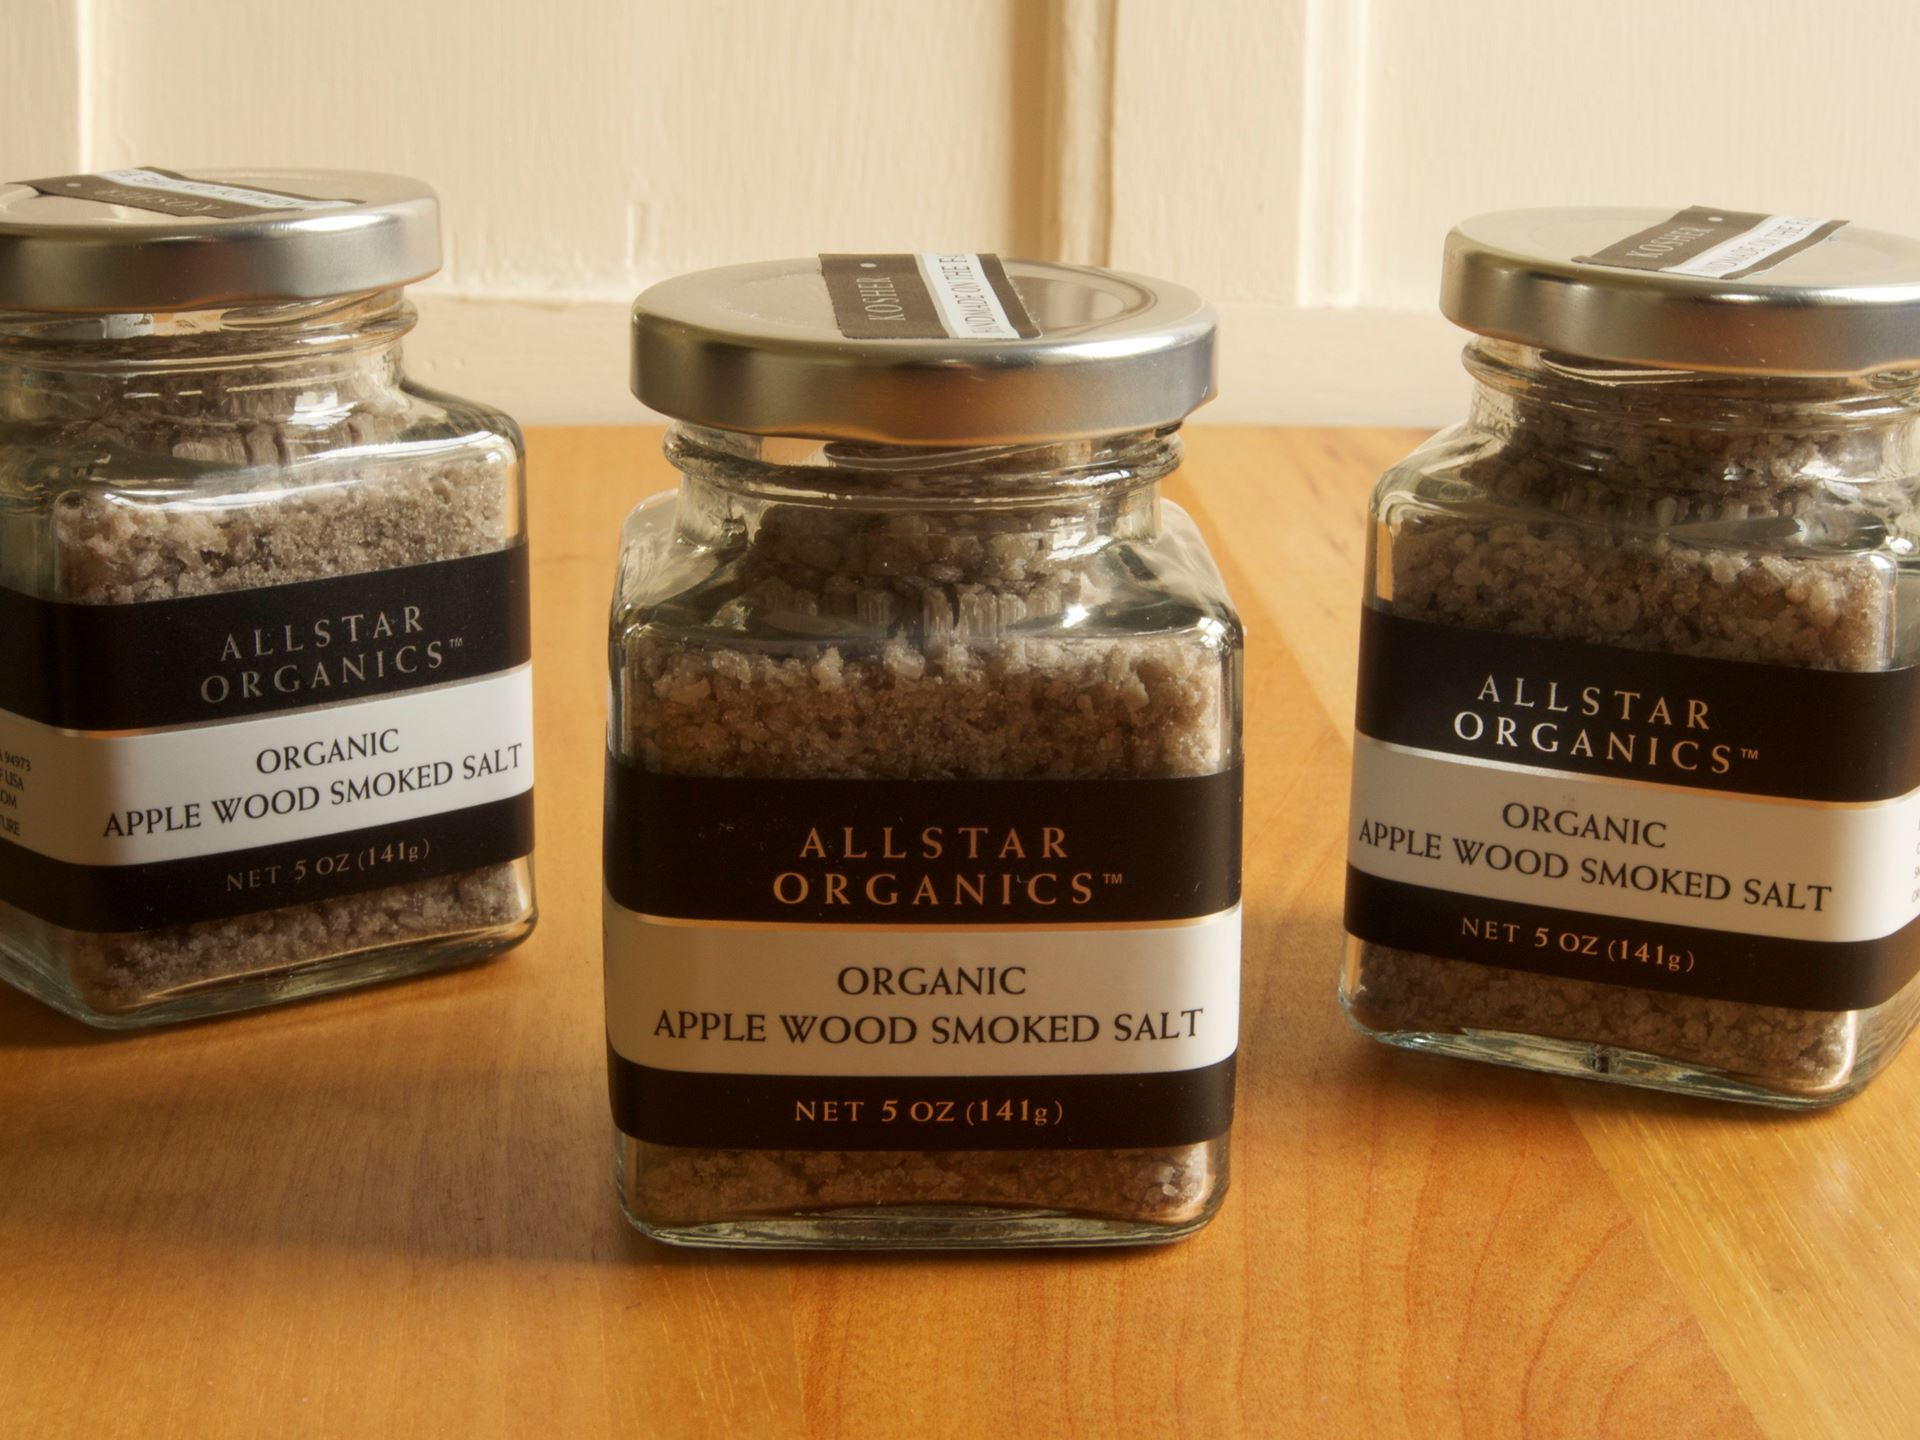 Picture of Allstar Organics Applewood Smoked Salt